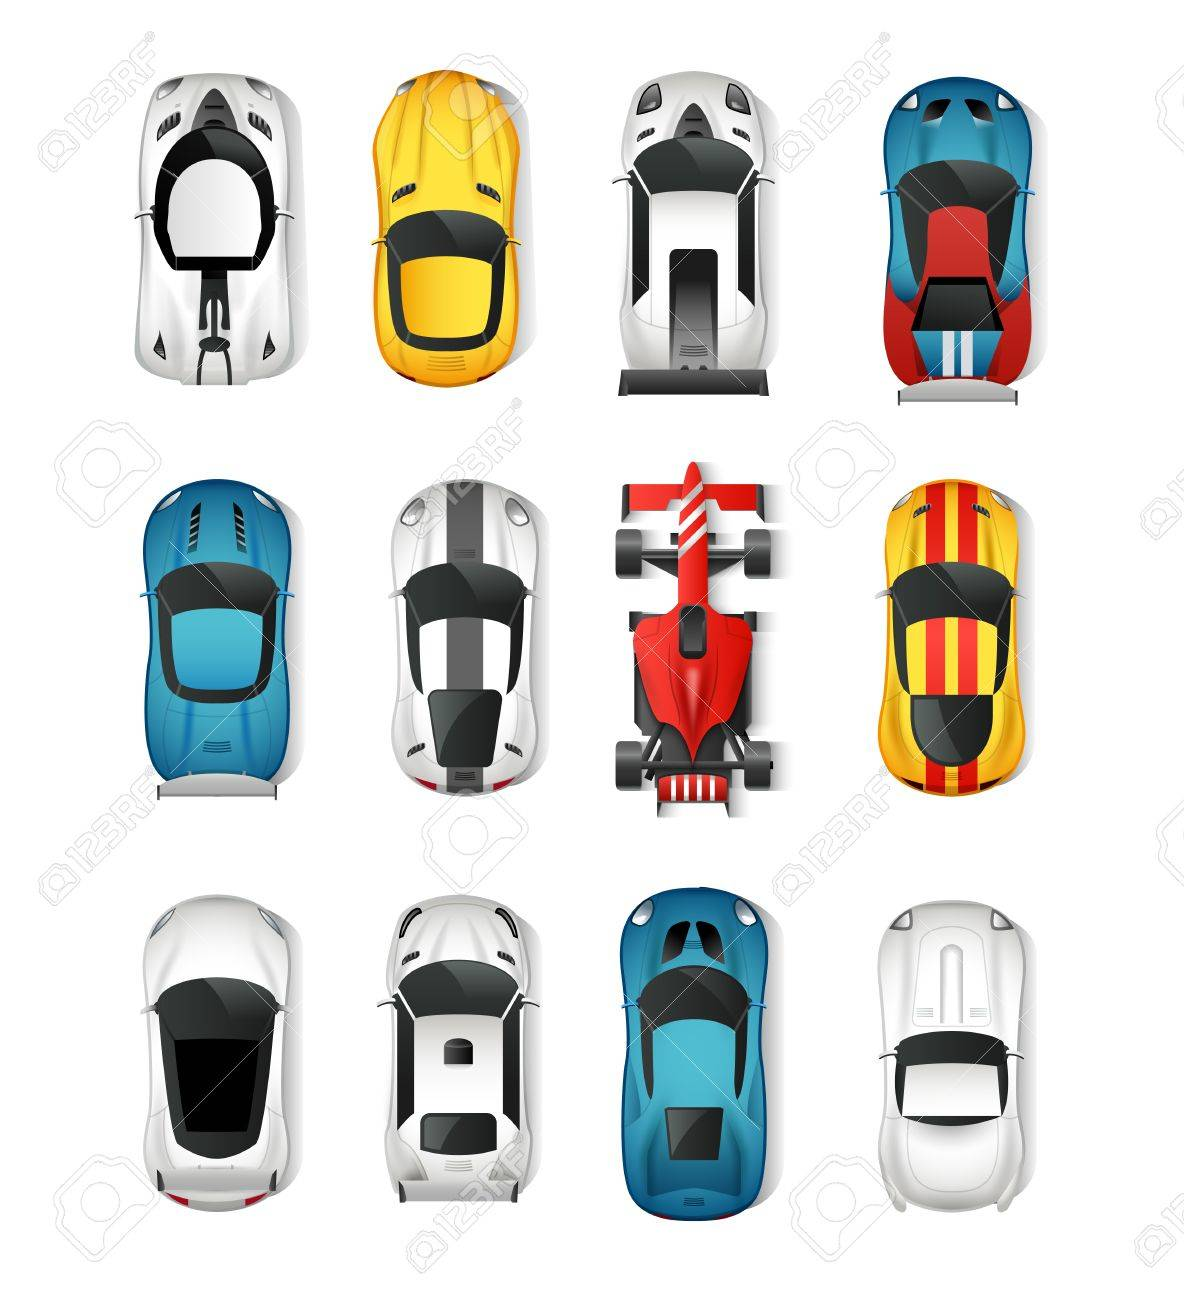 Sport Cars Top View Icons Set Racing Cars Isolated Vector Illustration